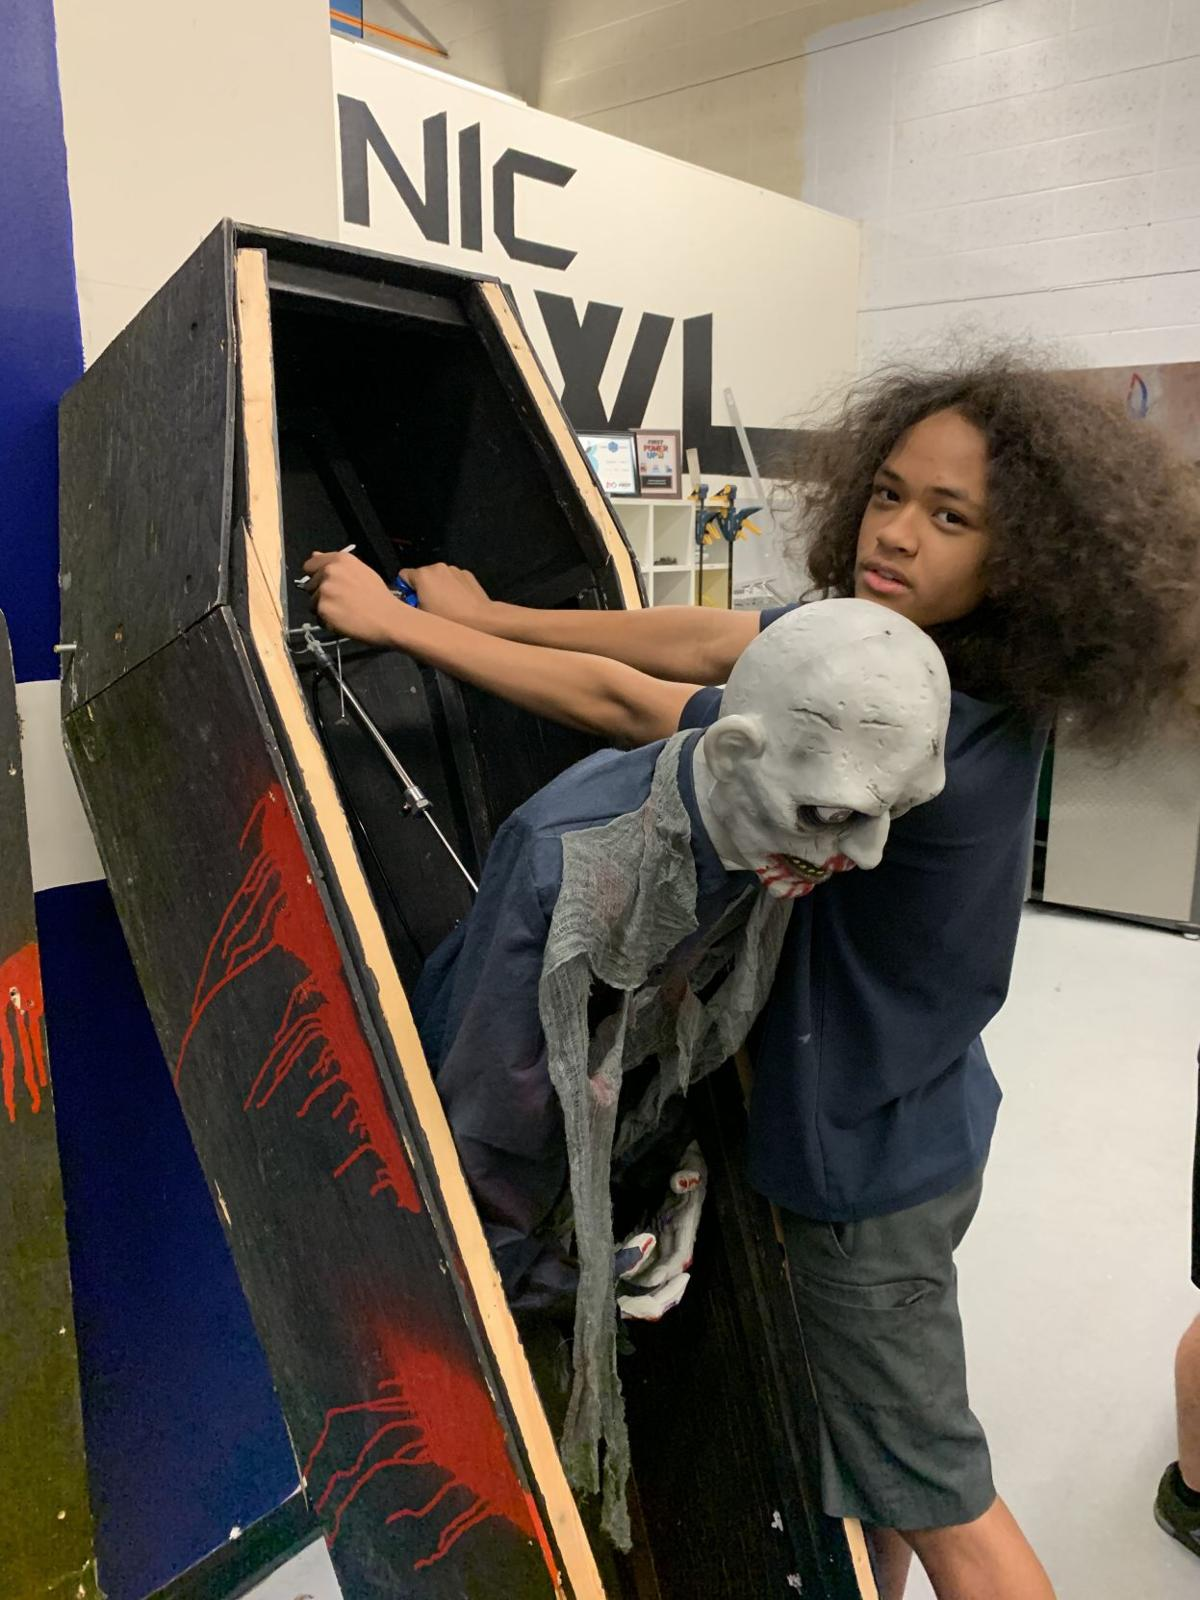 Entertainment: Giving back this Halloween: Pilon Haunted House